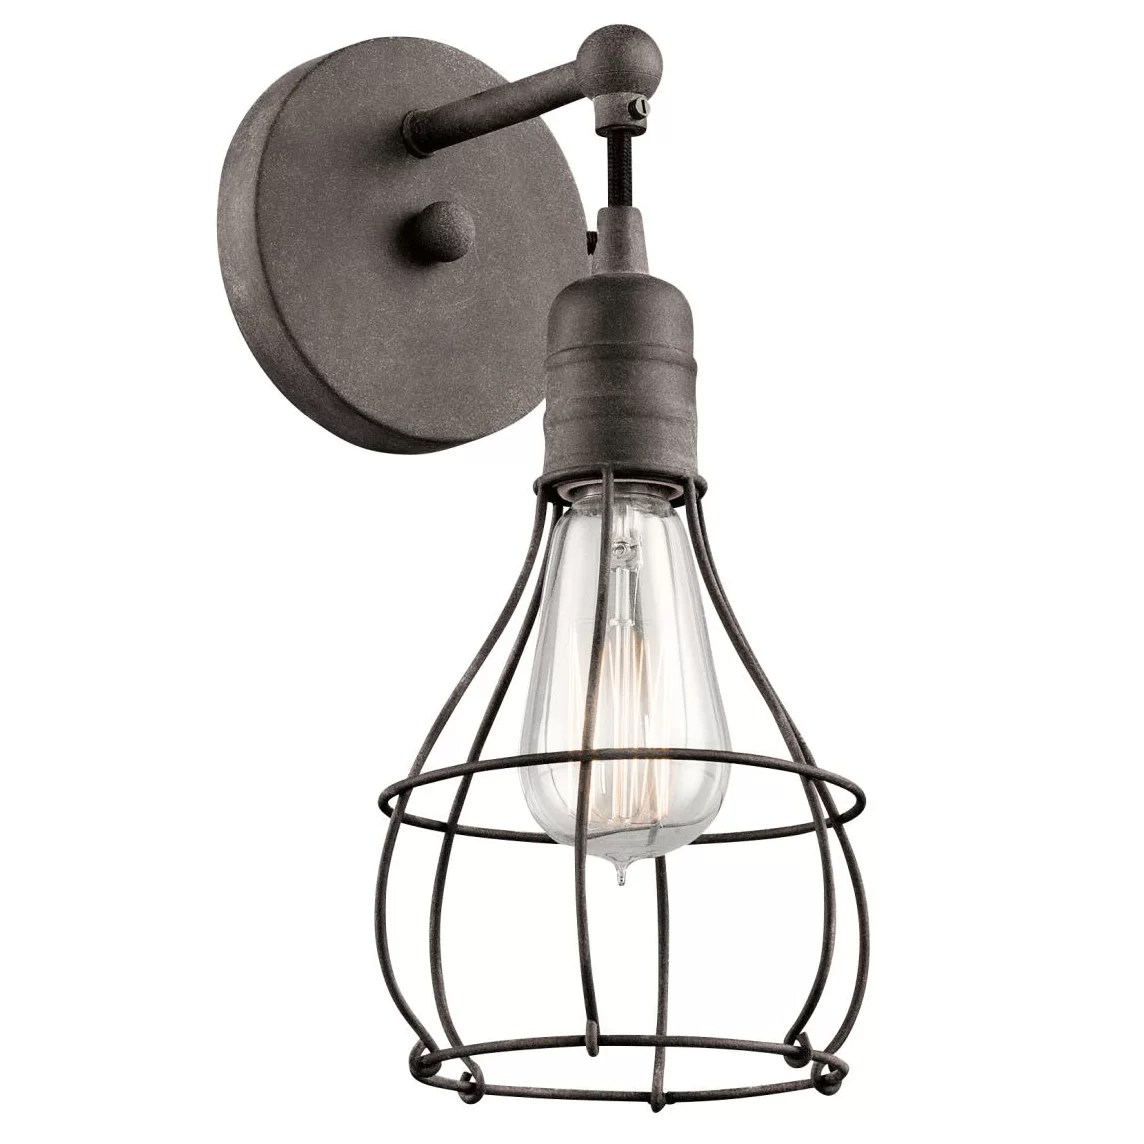 Kichler Industrial 1 Light Wall Sconce & Reviews